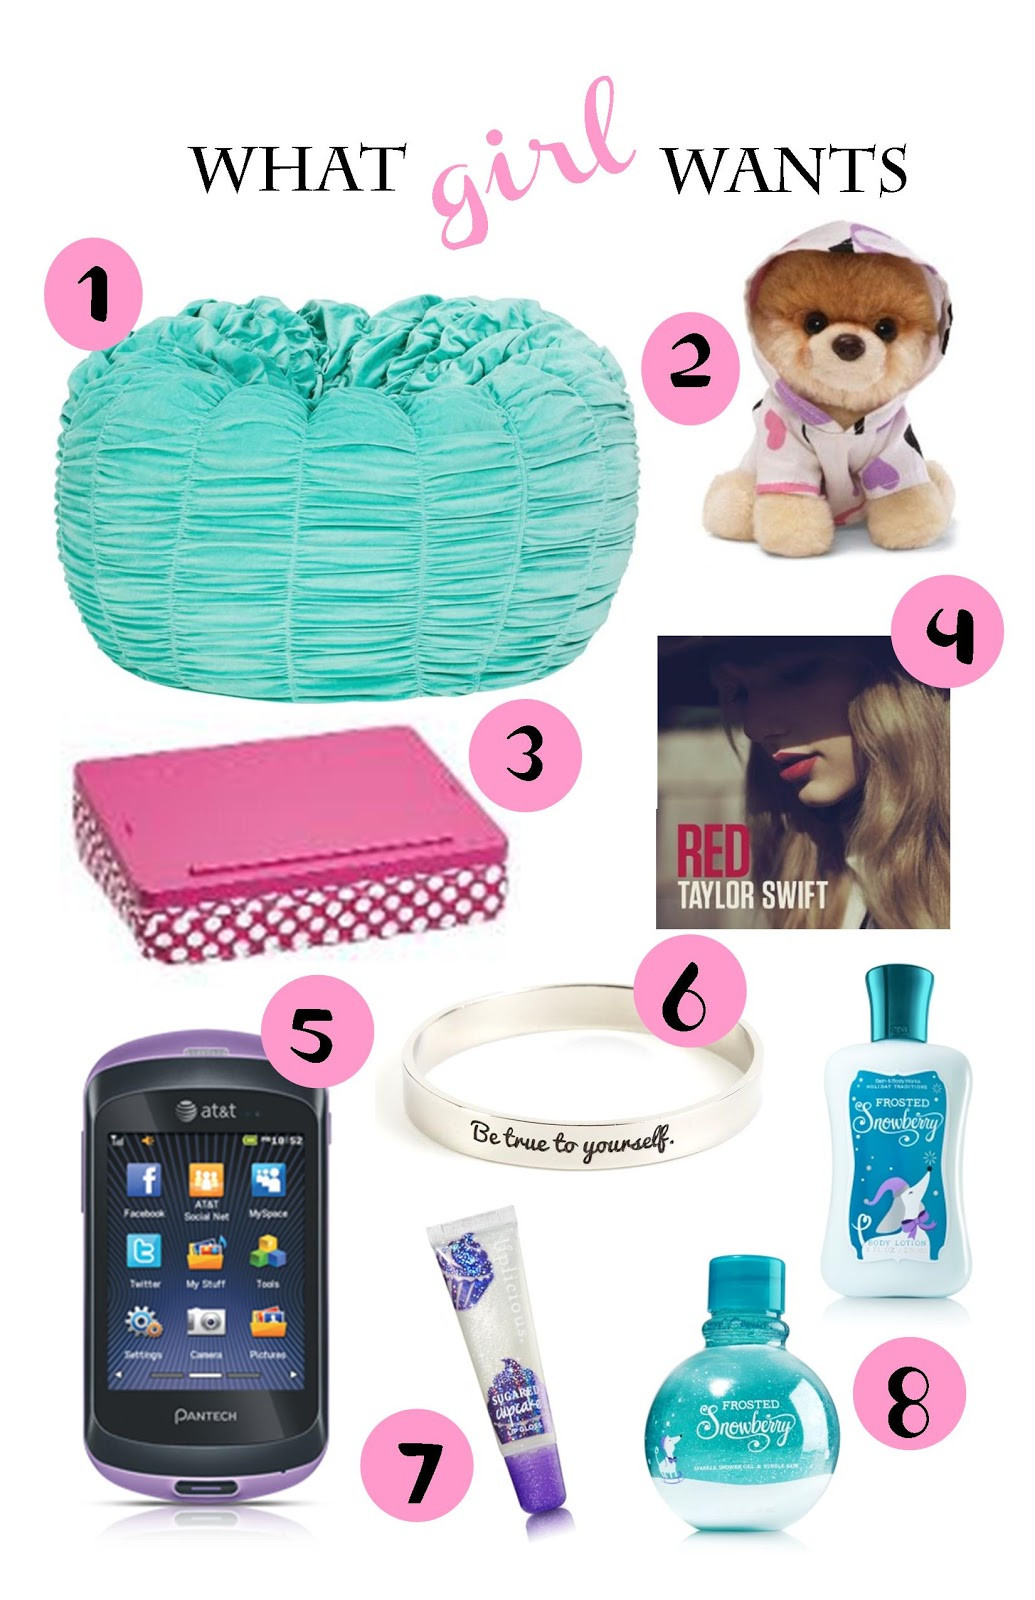 Best ideas about Tween Gift Ideas Girls . Save or Pin Icing Designs Gift Ideas for Tween Girls Now.